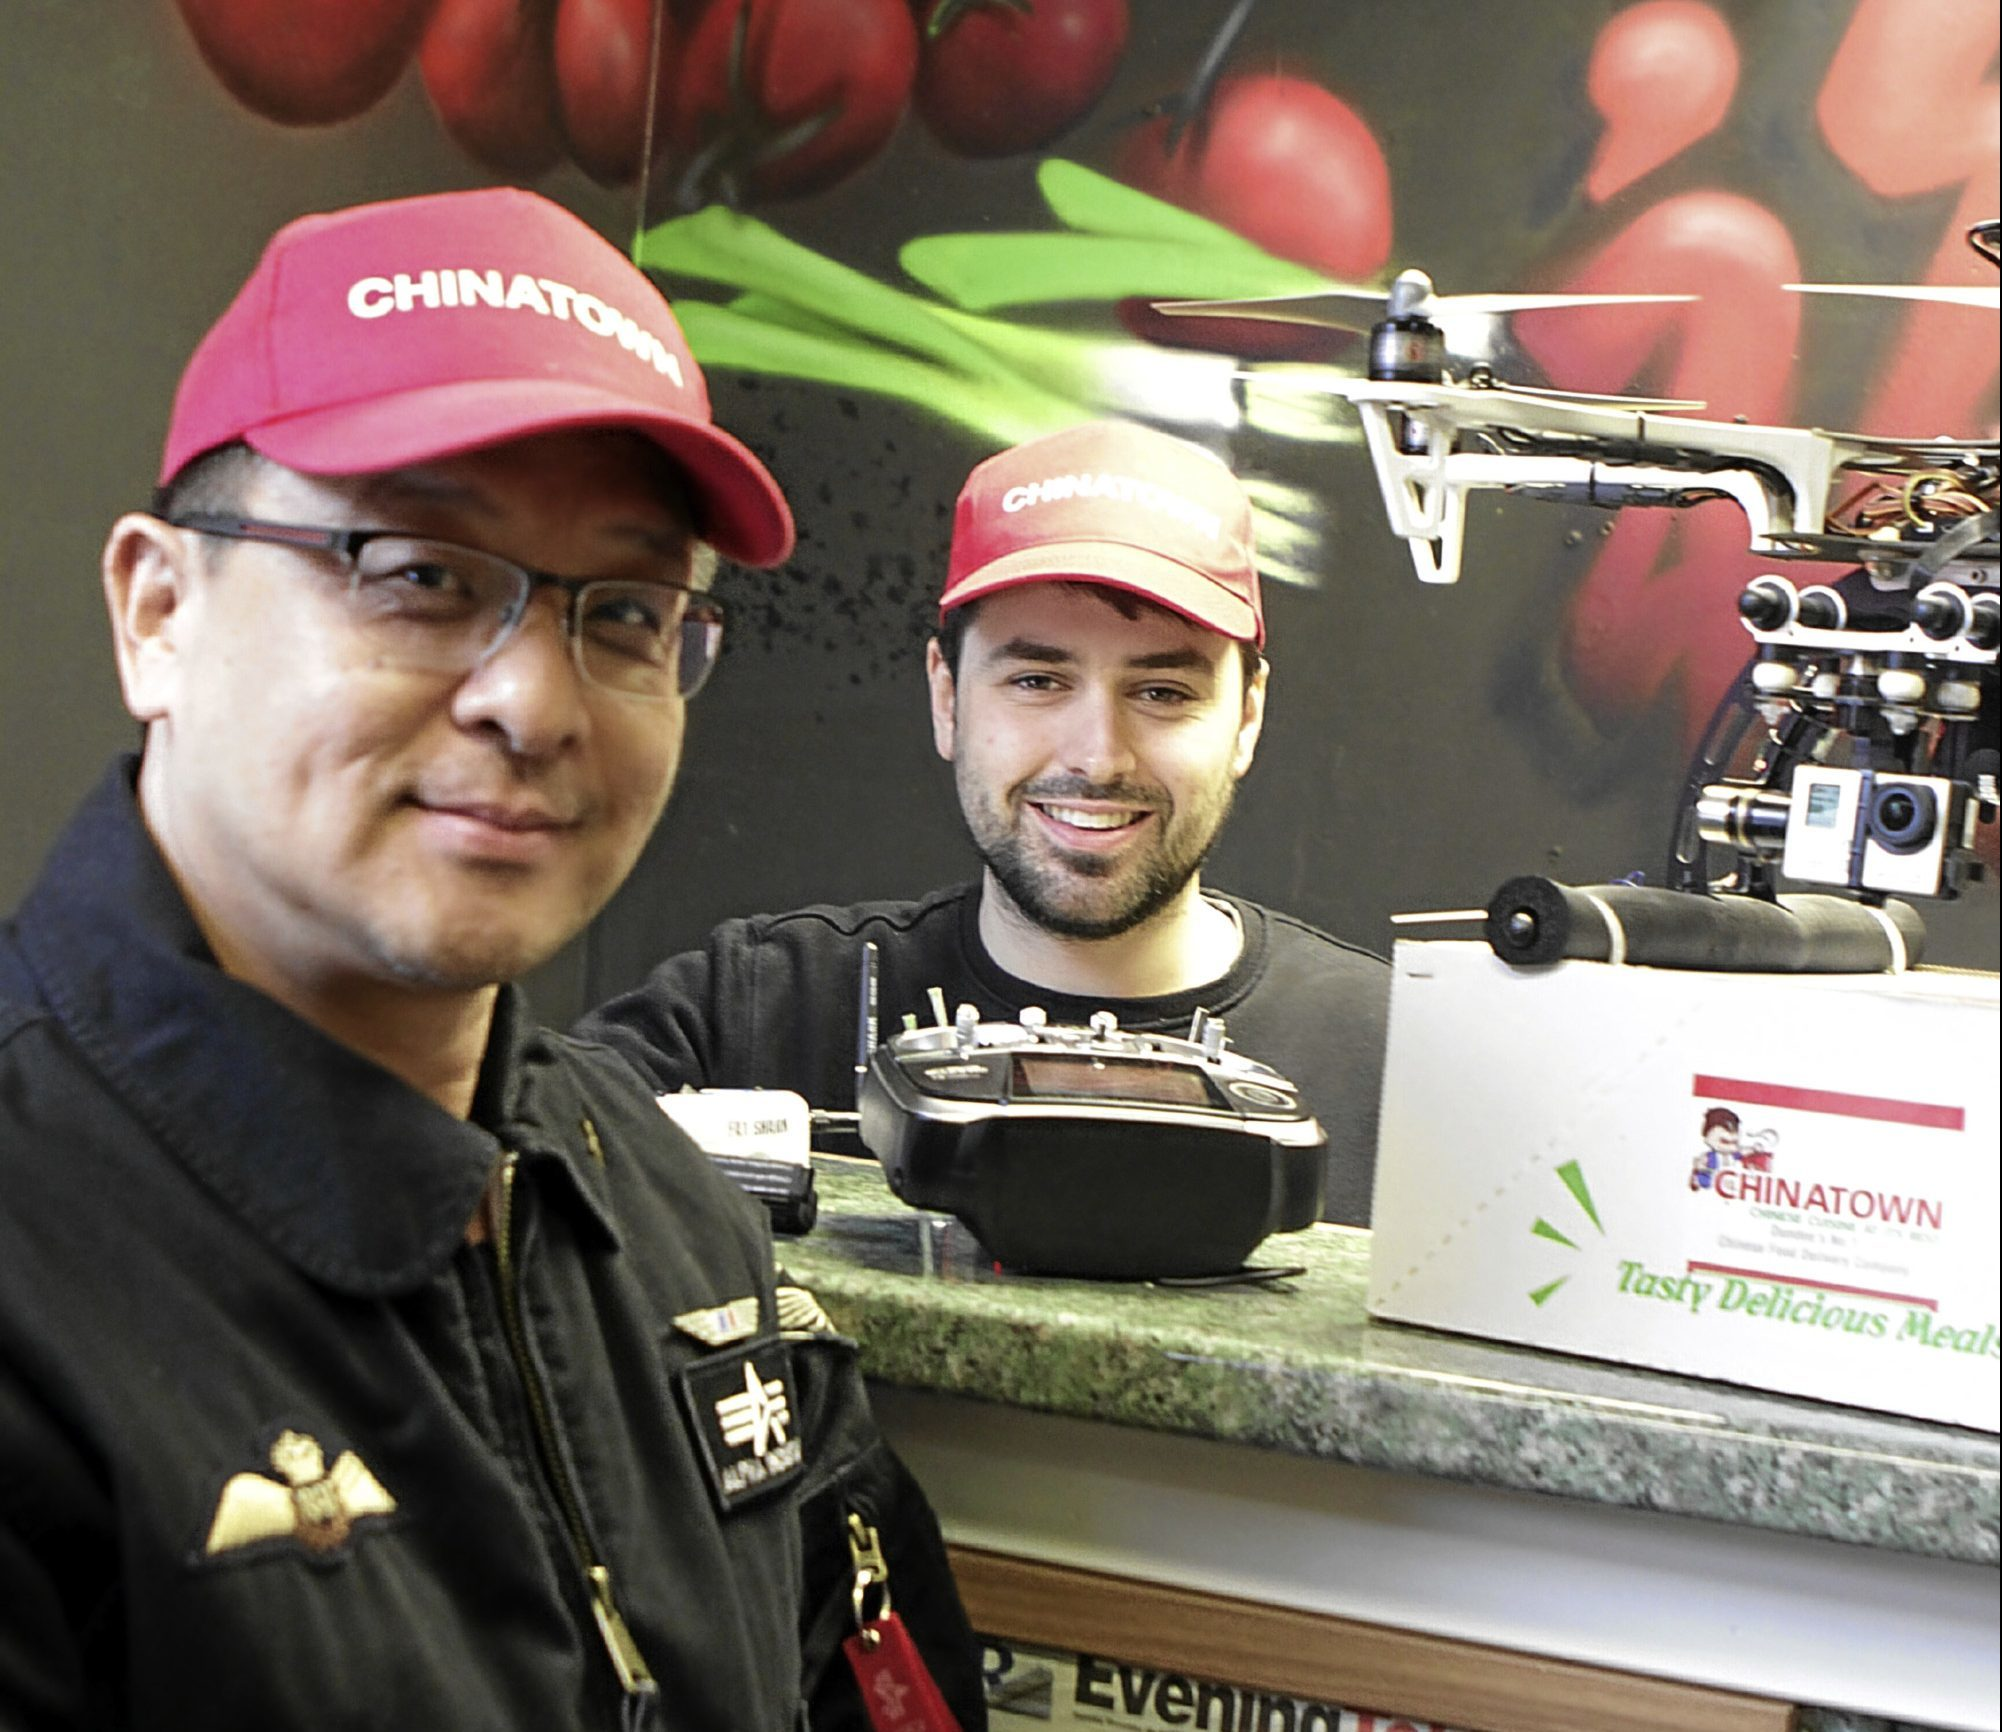 Steve Chow and Gregor James  of Chinatown takeaway